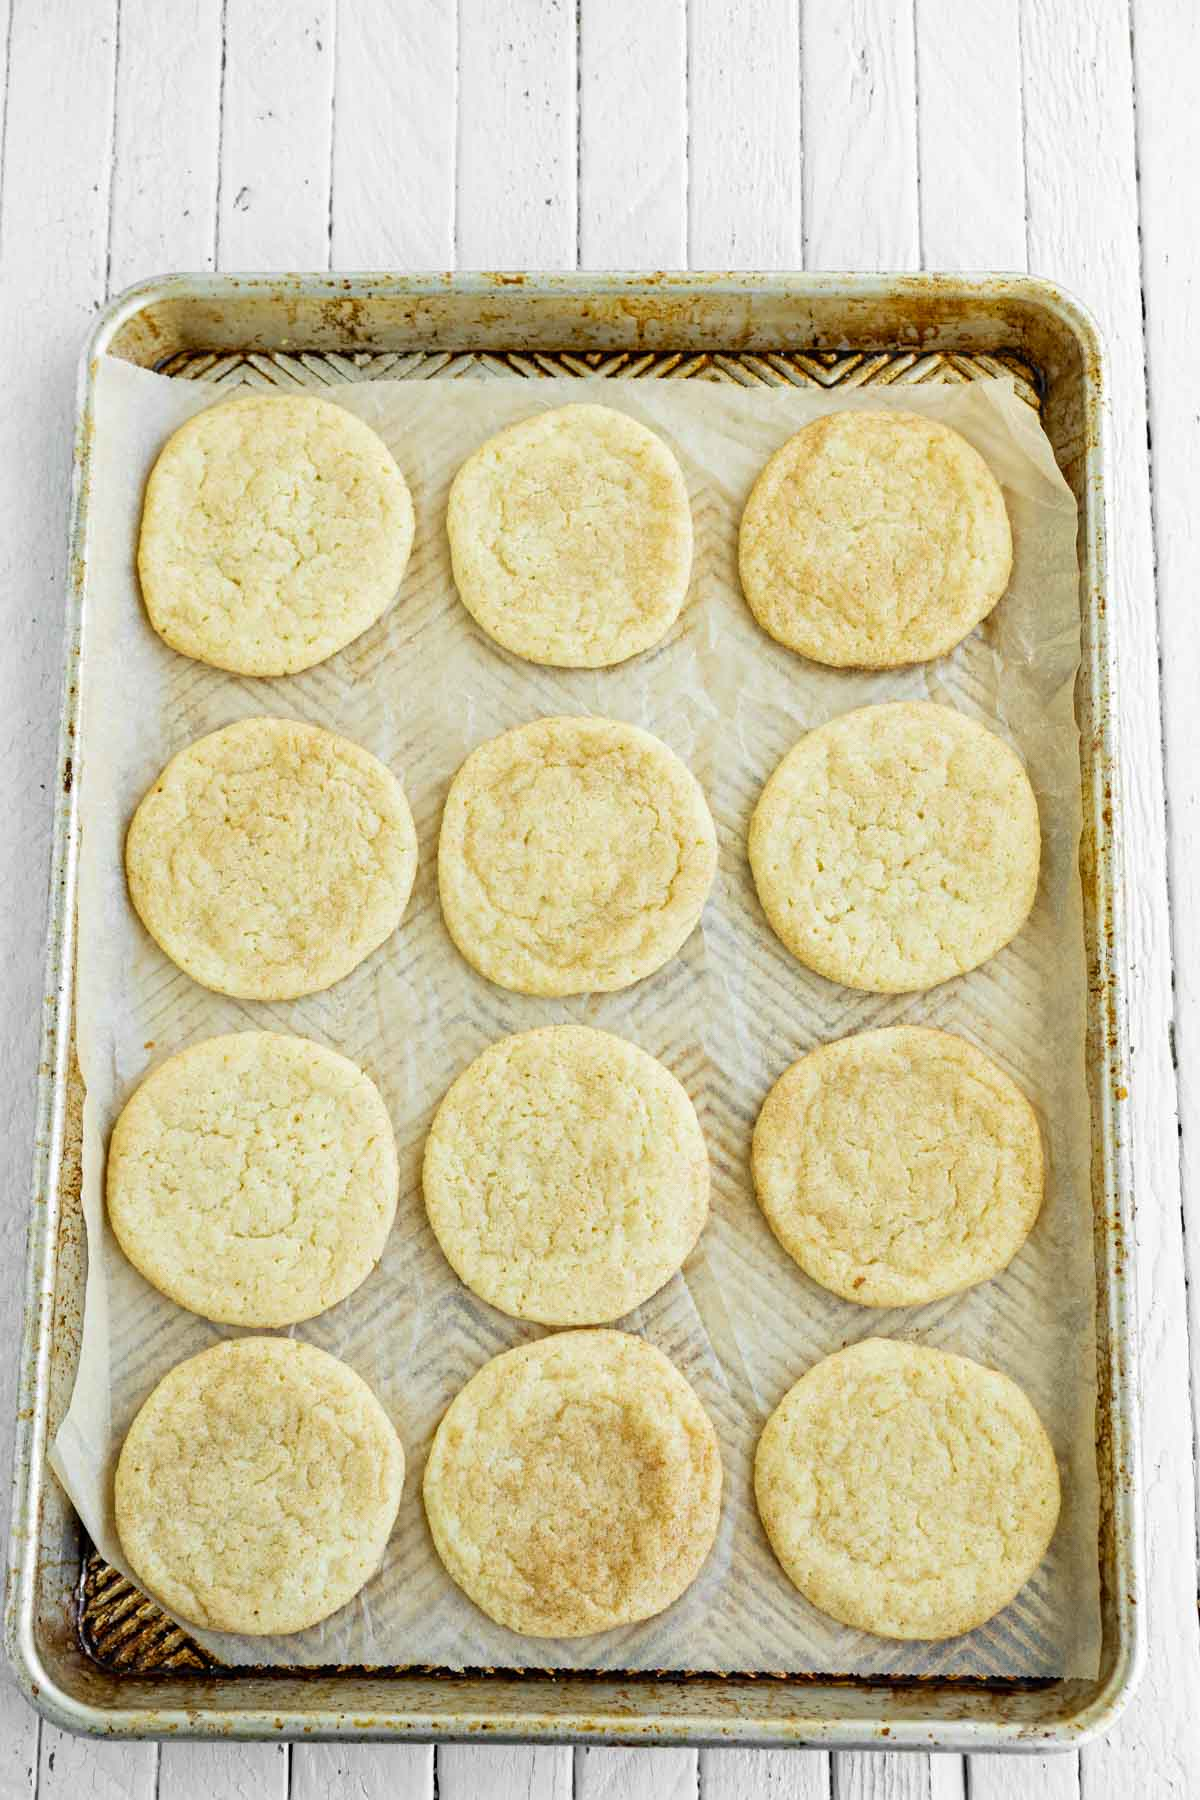 baked snickerdoodles on a cookie sheet